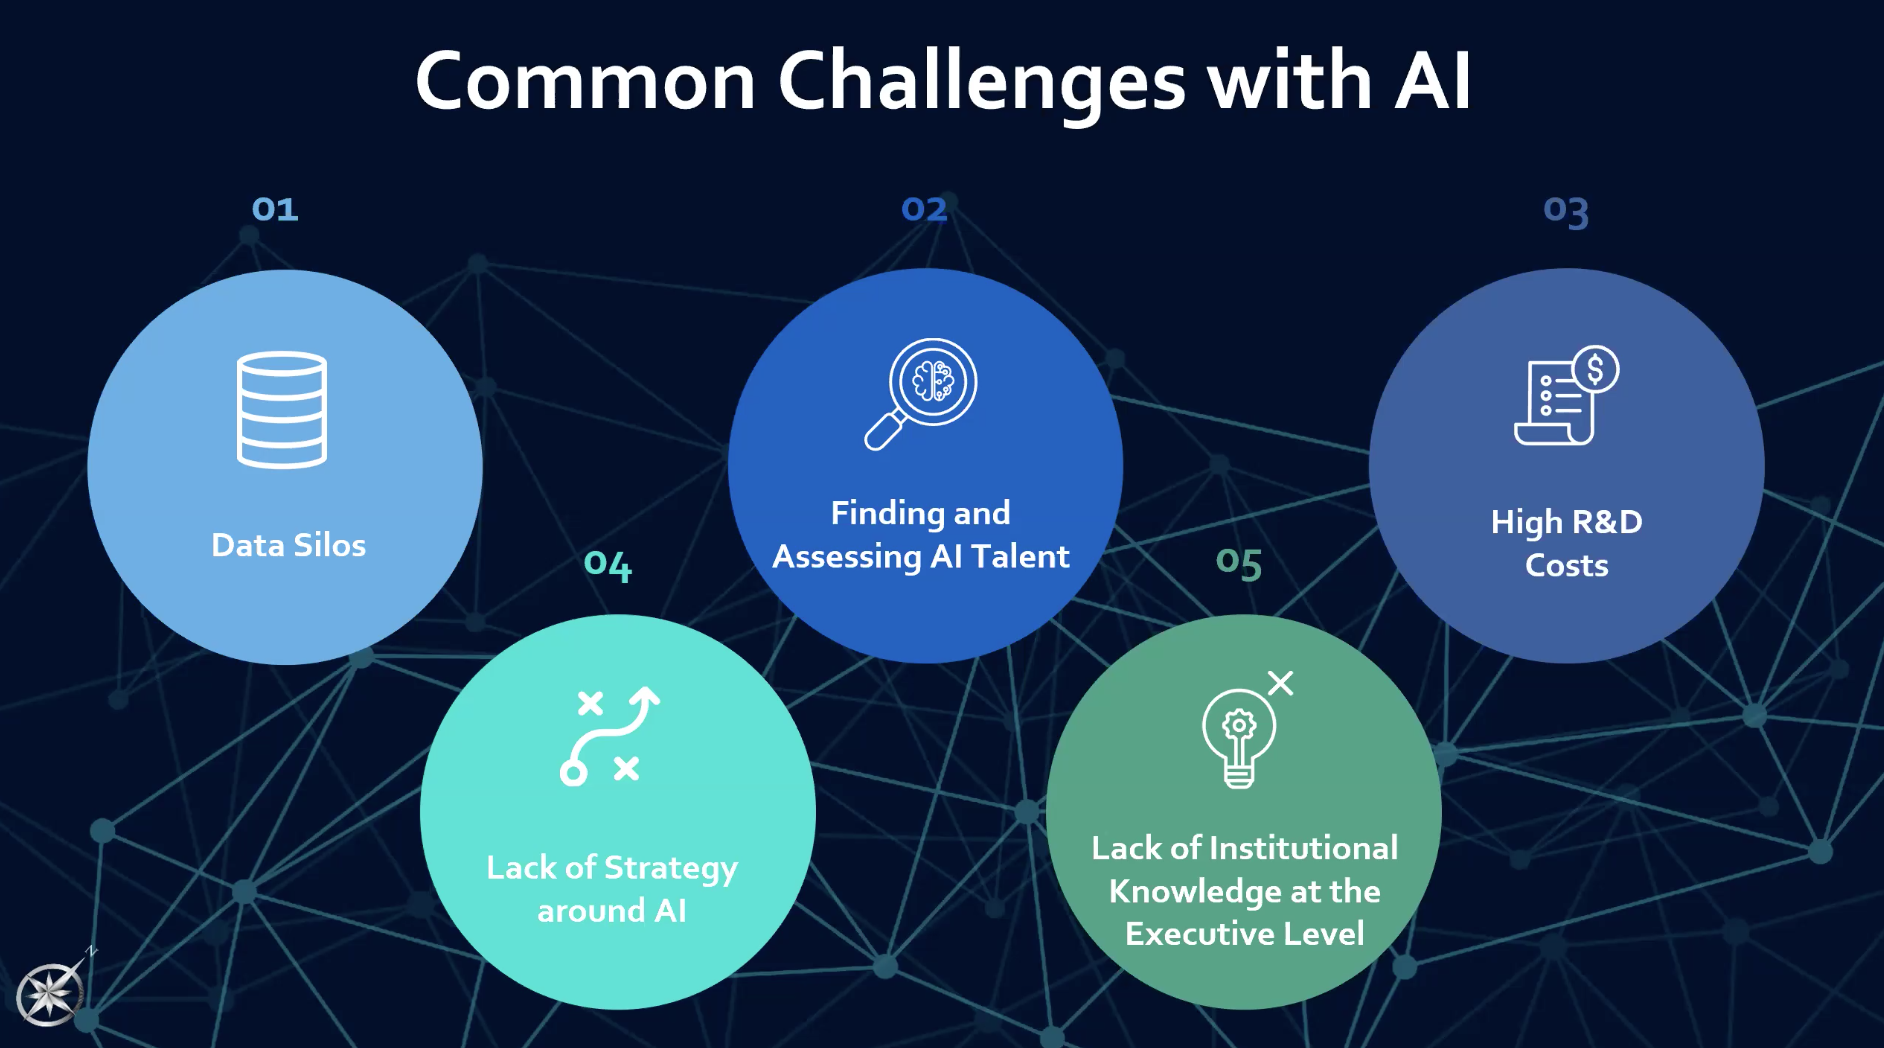 Image representing the common challenges with AI.